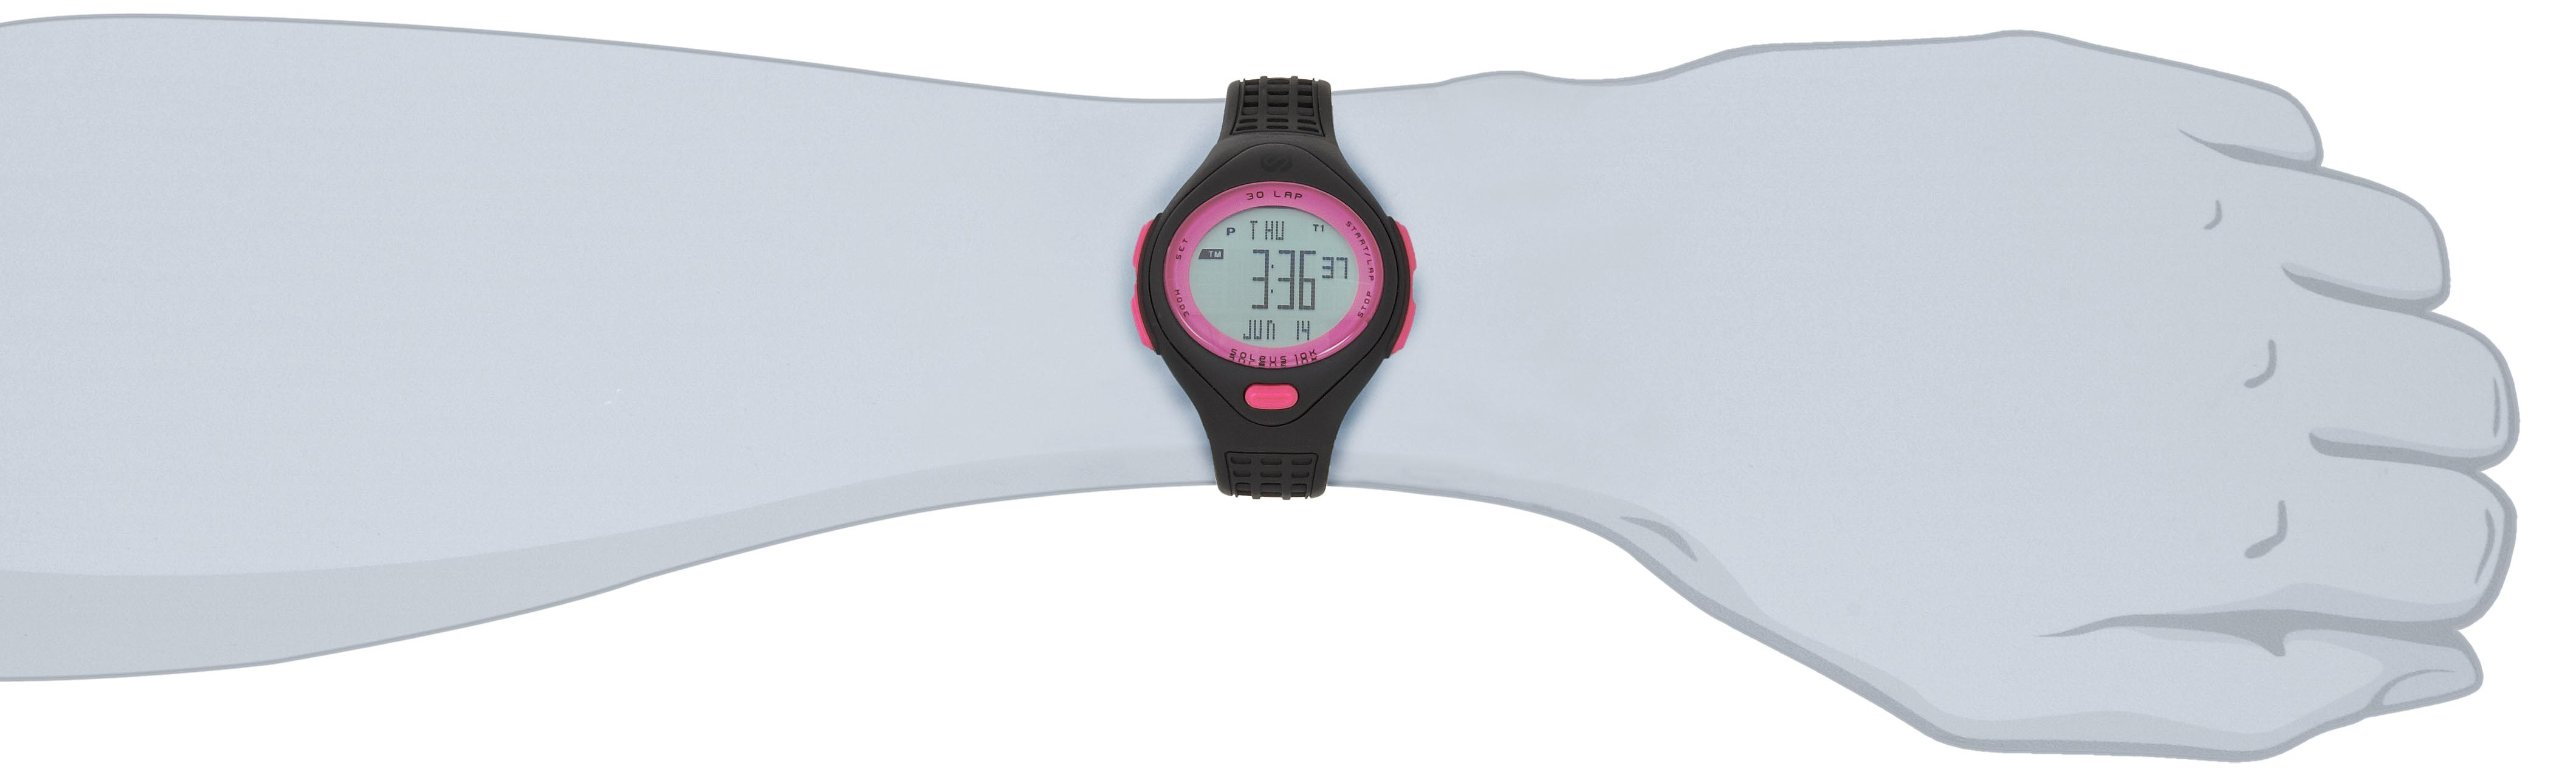 b17471e3ea1d Galleon - Soleus Women s SR007060P 10K Black And Pink 30 Lap Digital Sports  Watch